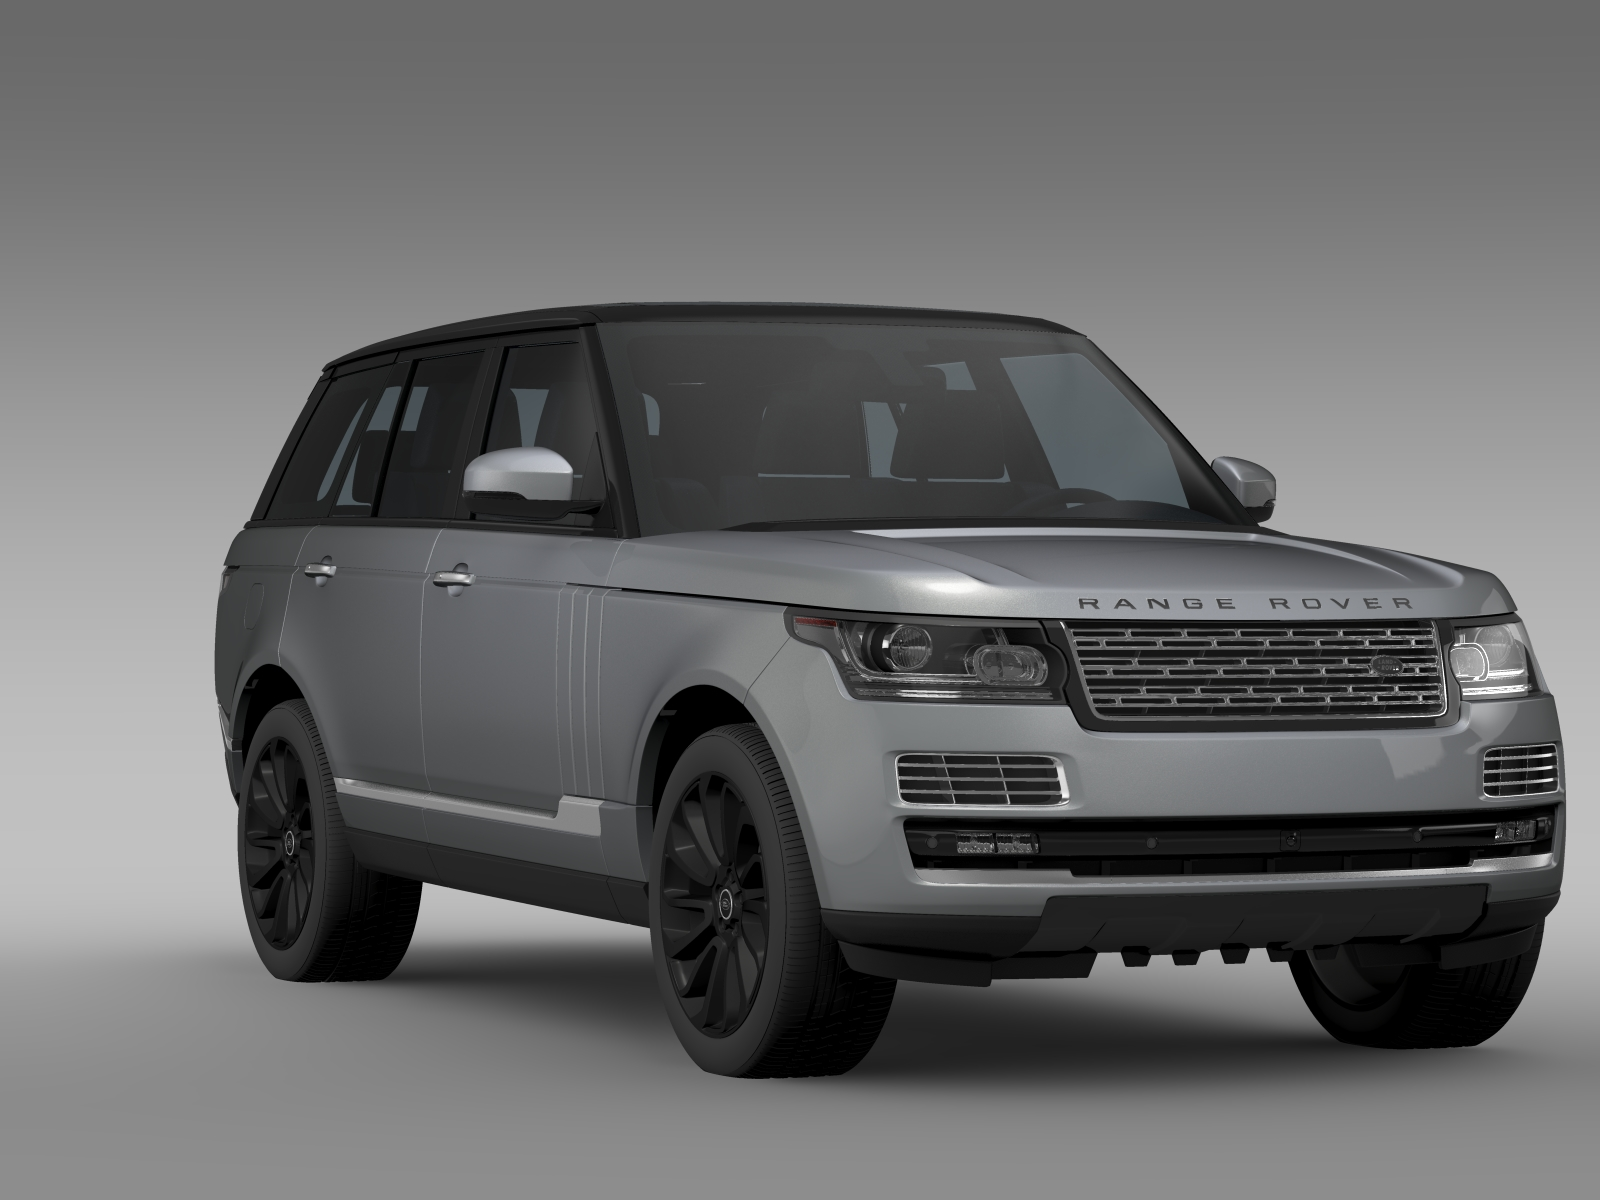 range rover svautobiography l405 2016 v1 3d model. Black Bedroom Furniture Sets. Home Design Ideas